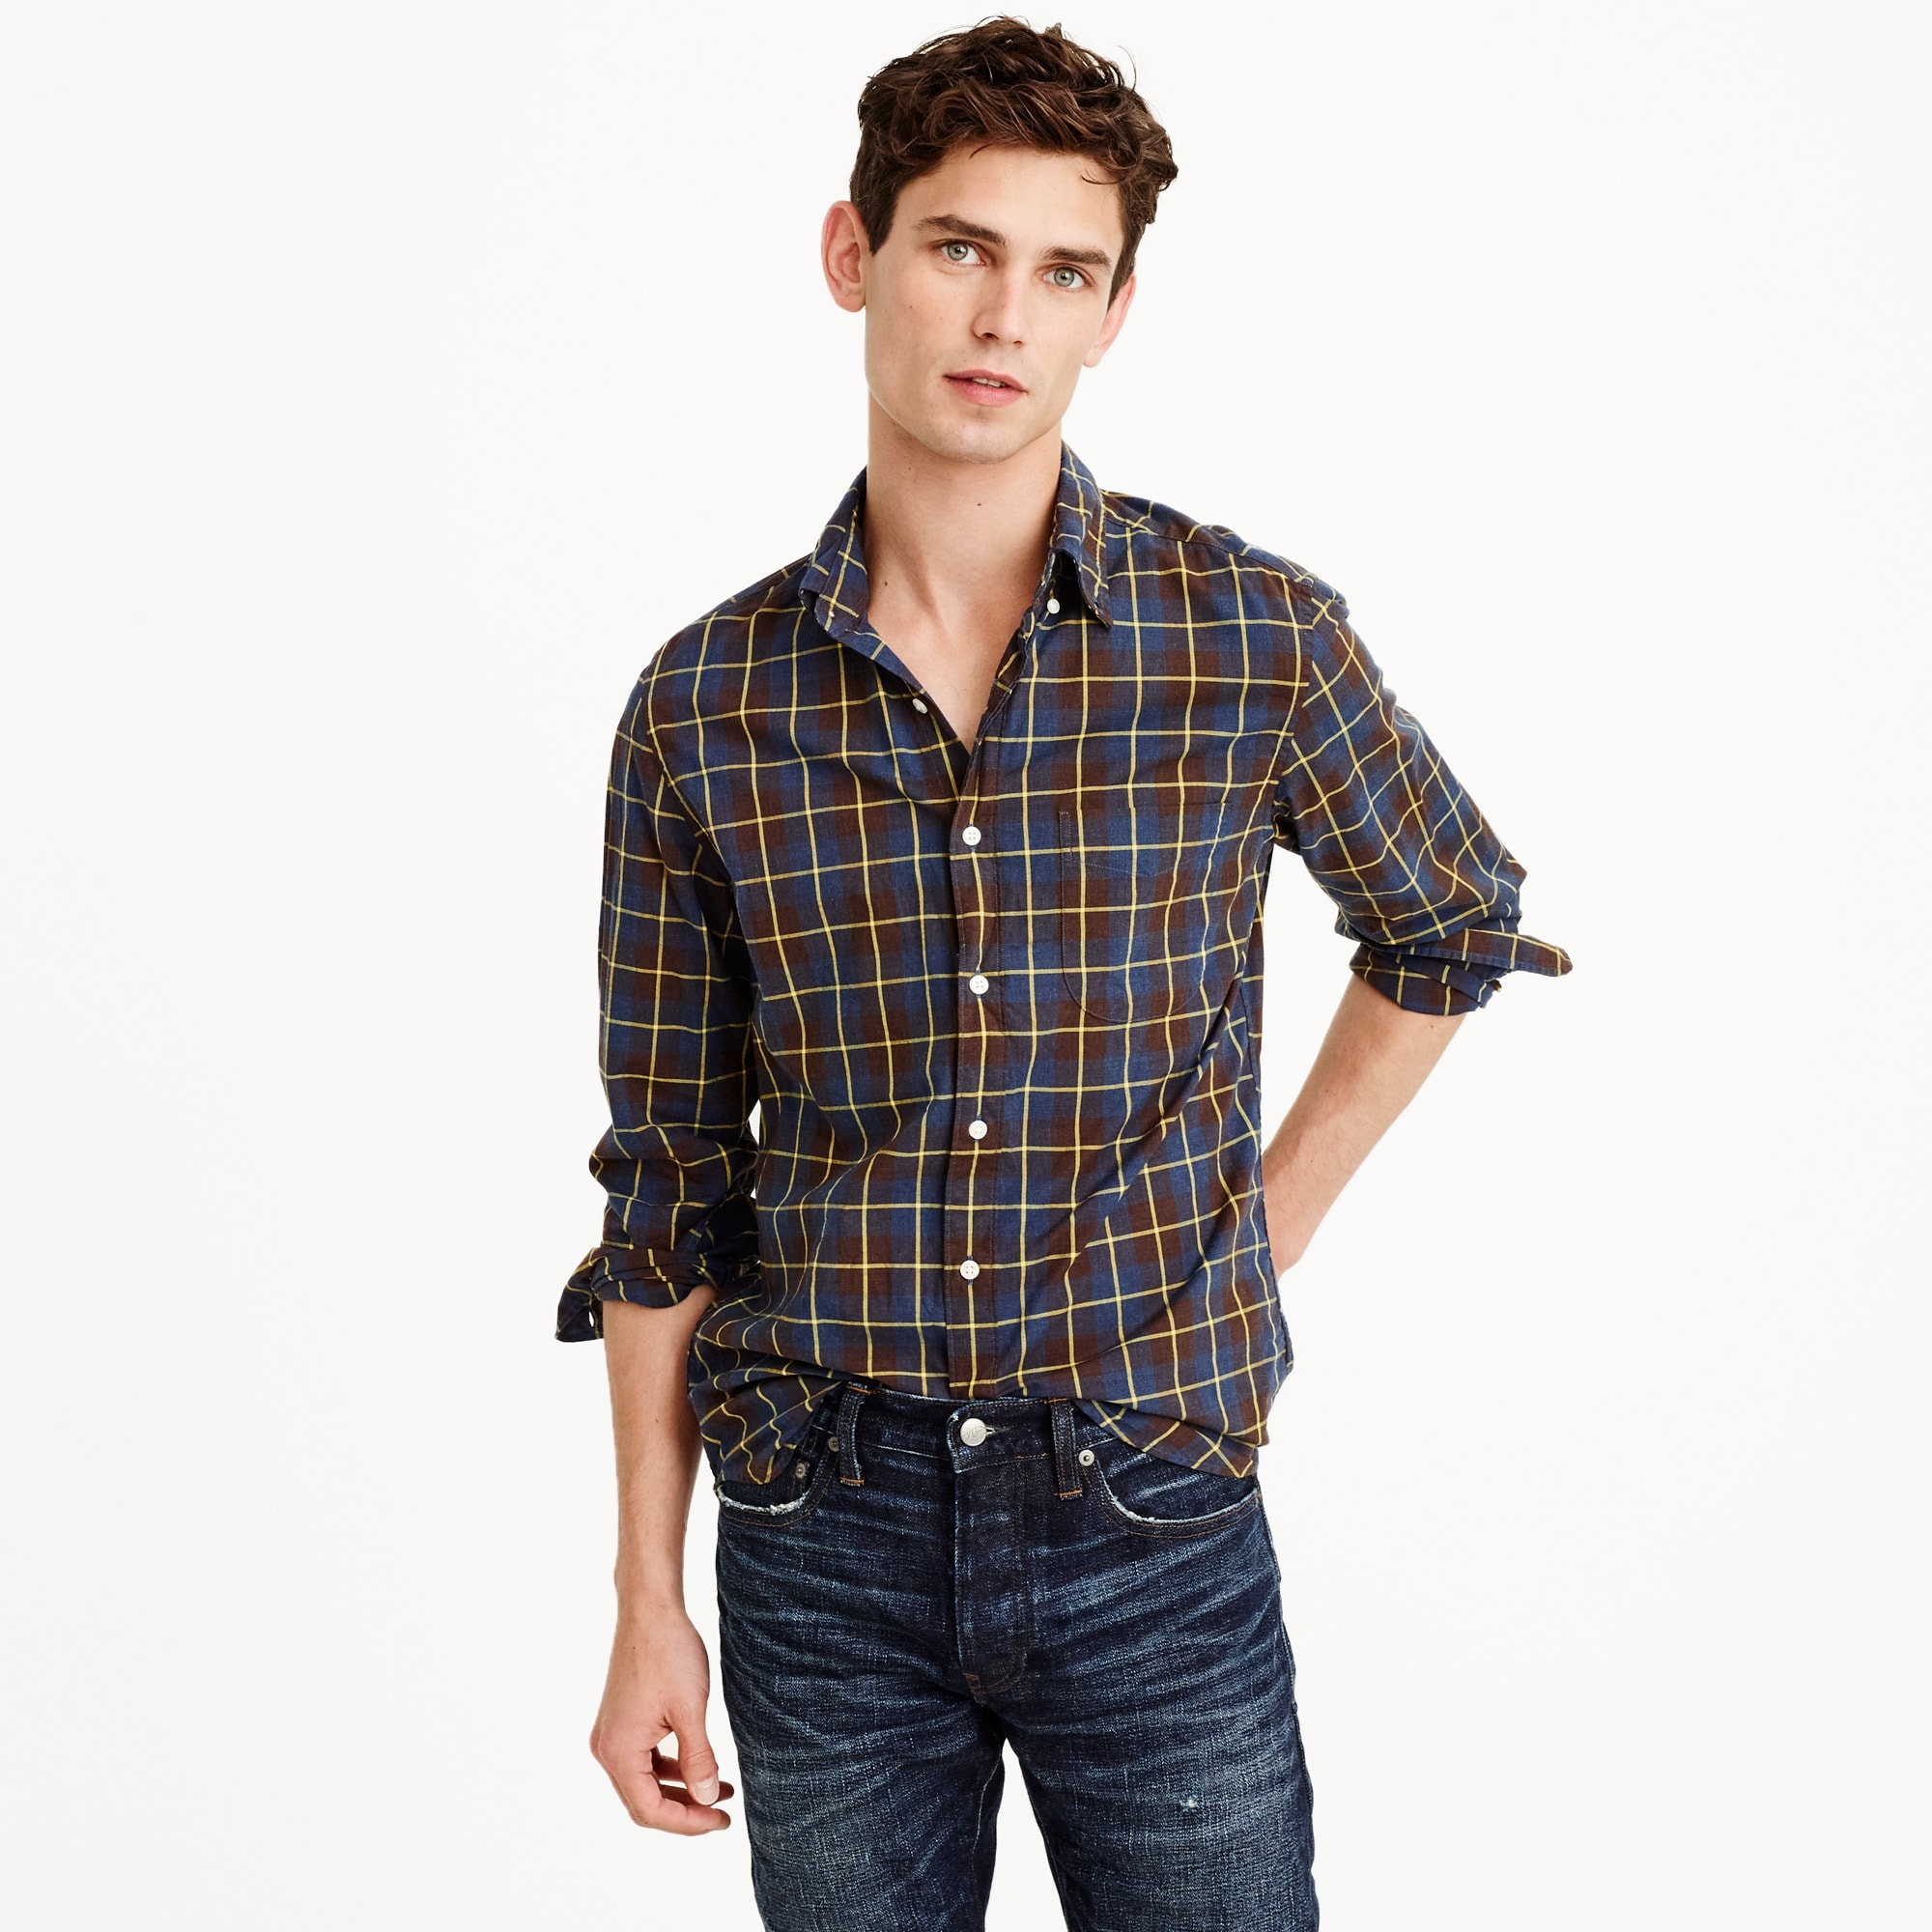 Heather poplin shirt in rustic plaid men casual shirts c